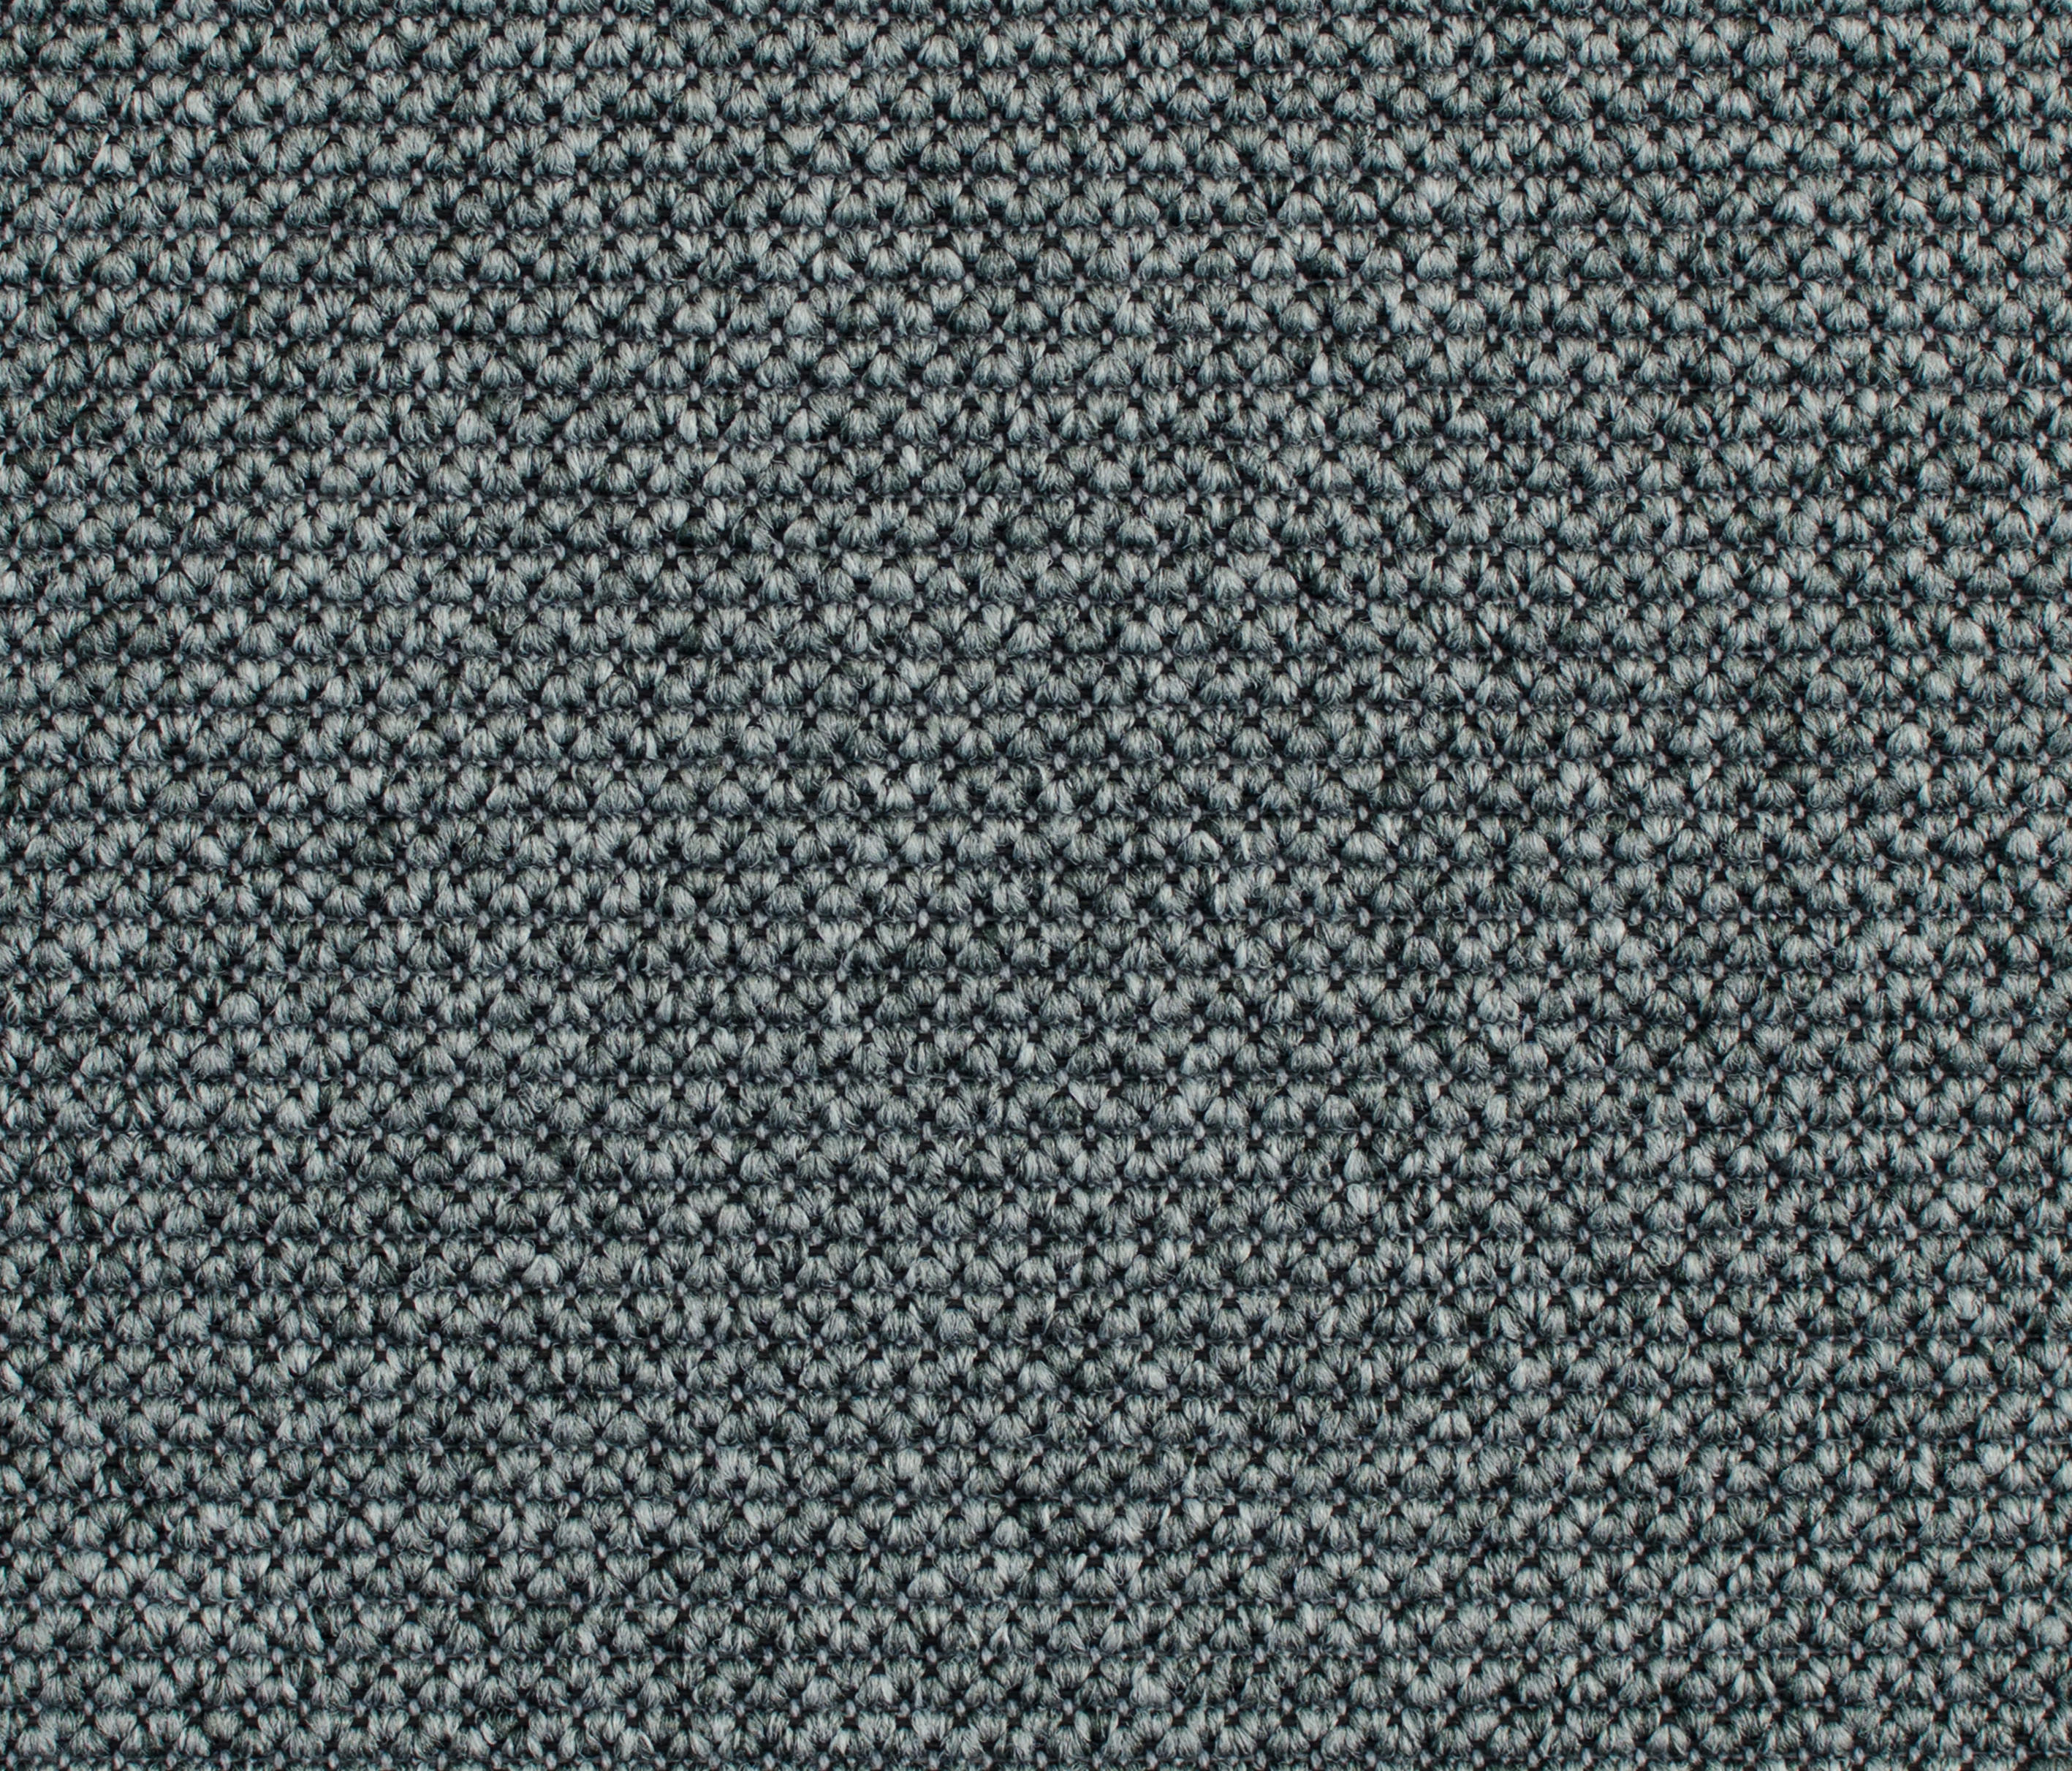 Eco Zen 280005 52739 Wall To Wall Carpets From Carpet